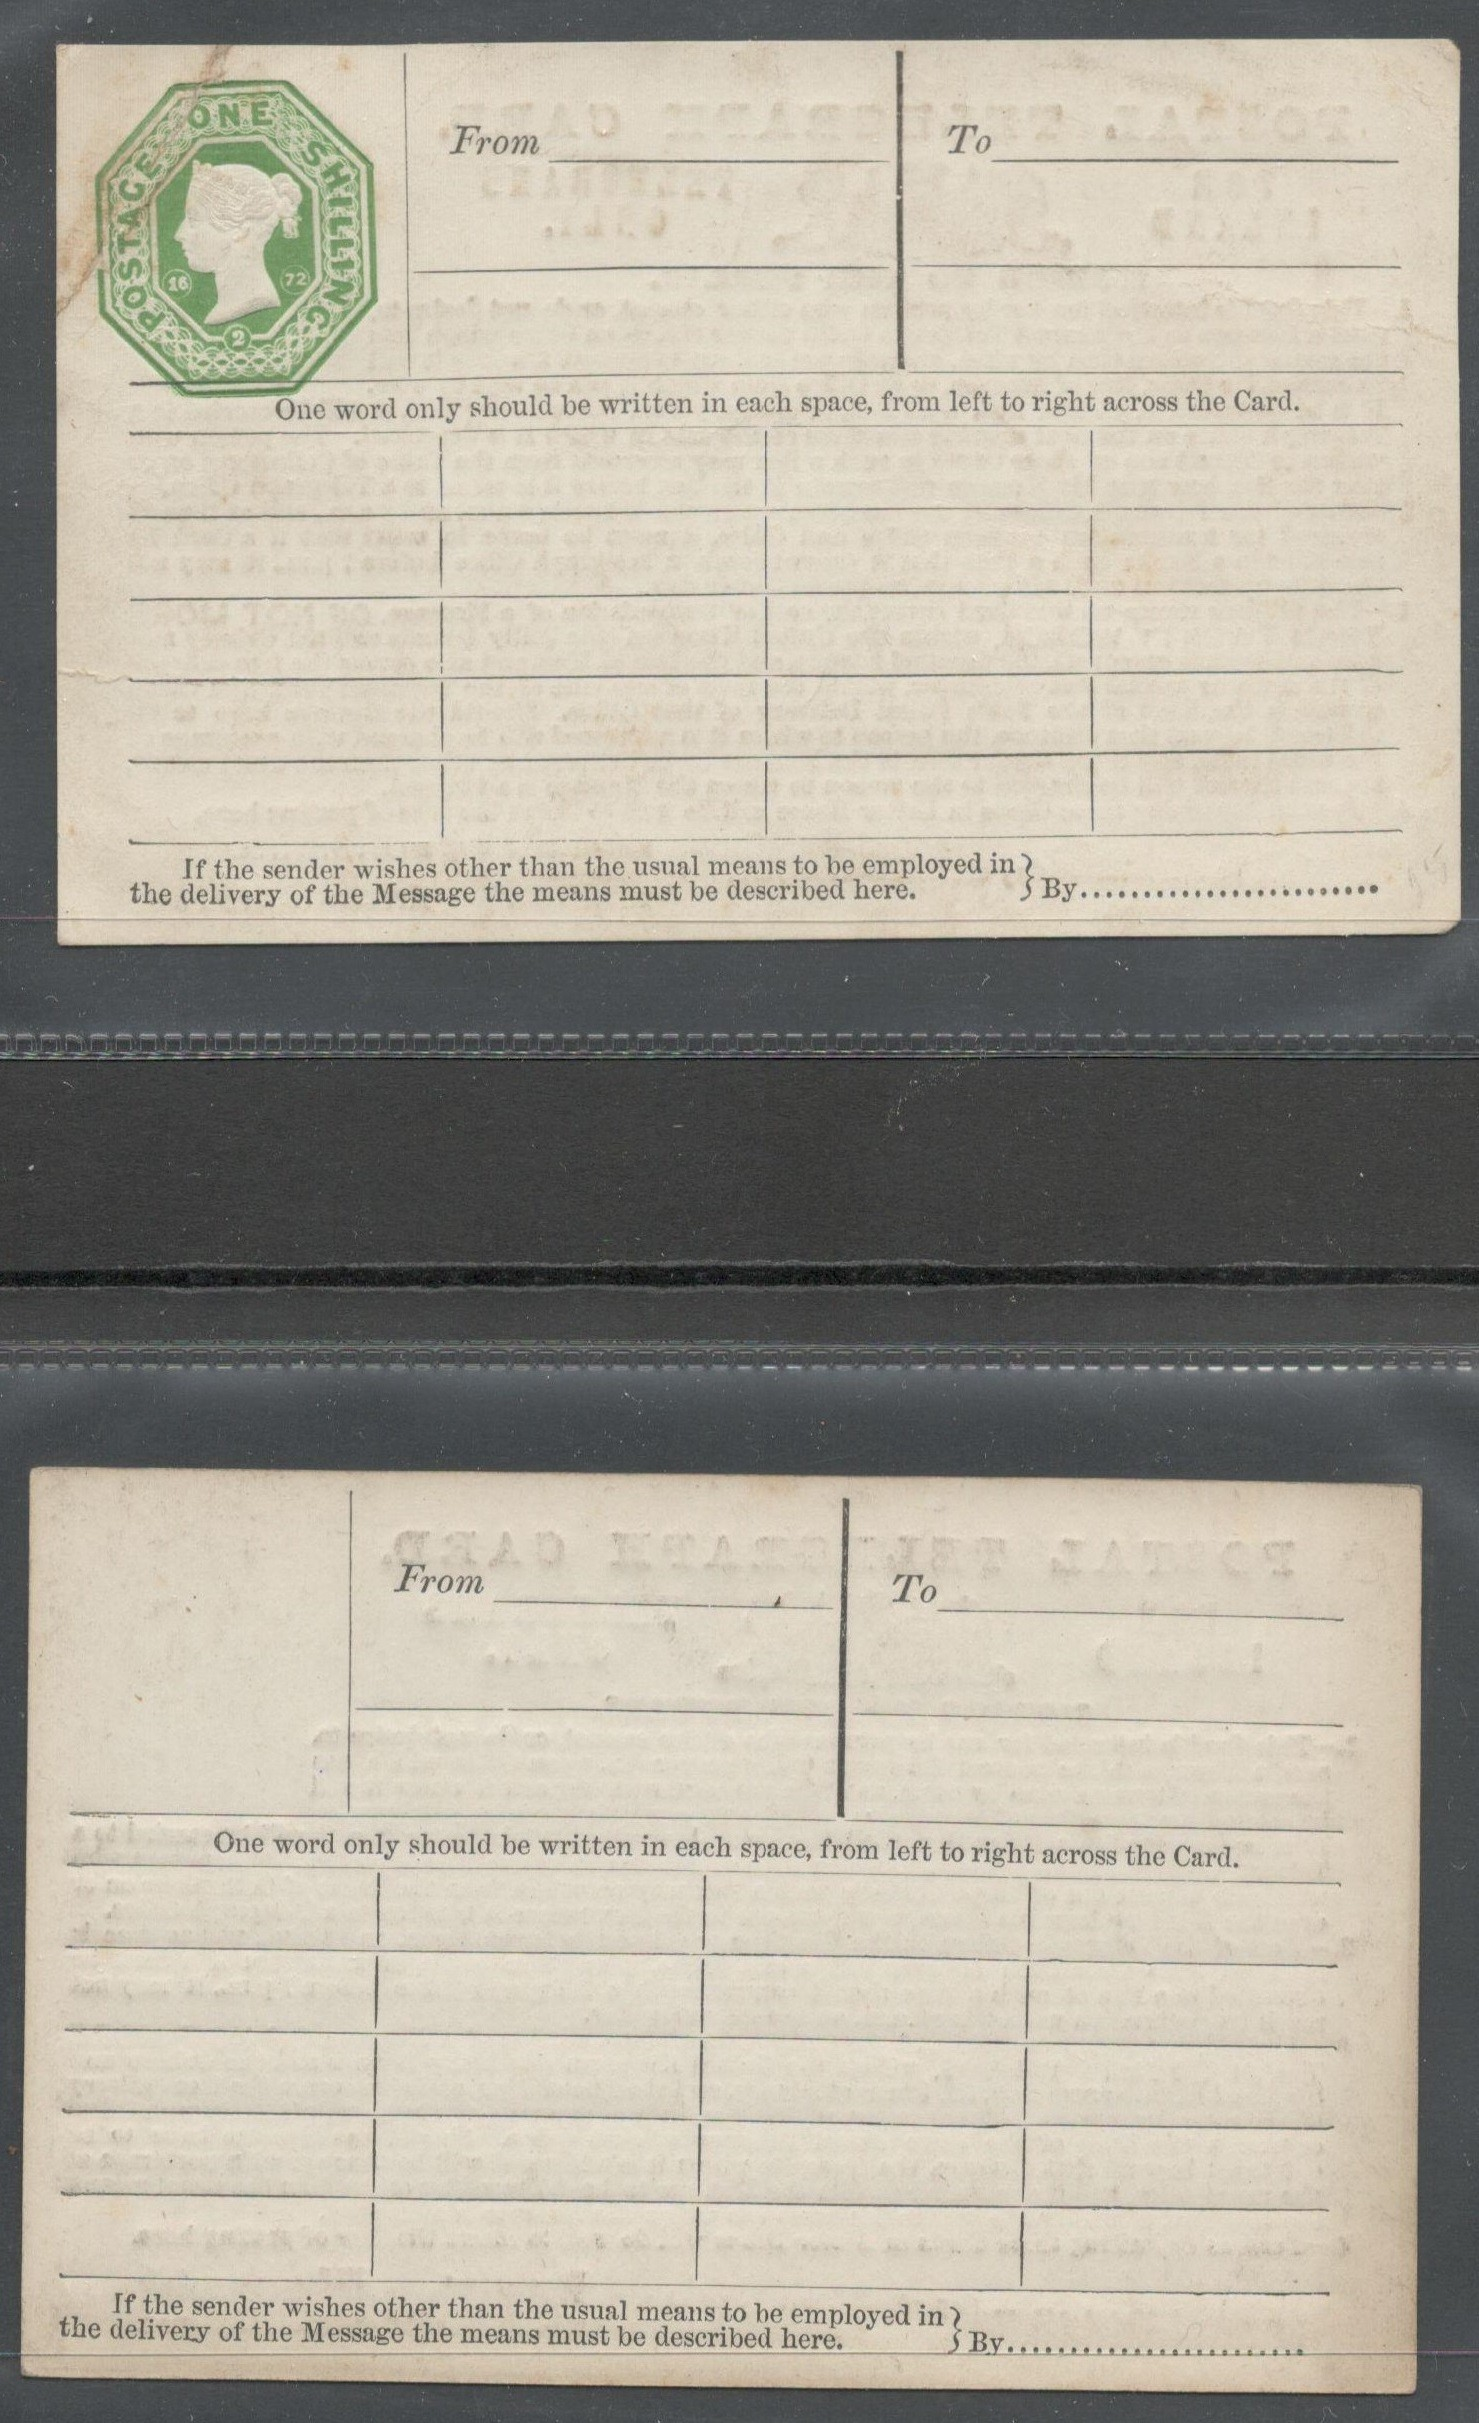 Lot 46 - QV POSTAL TELEGRAPH CARDS (ONE WITH EMBOSSED 1 SHILLING STAMP) FOR INLAND TELEGRAMS ONLY (2)